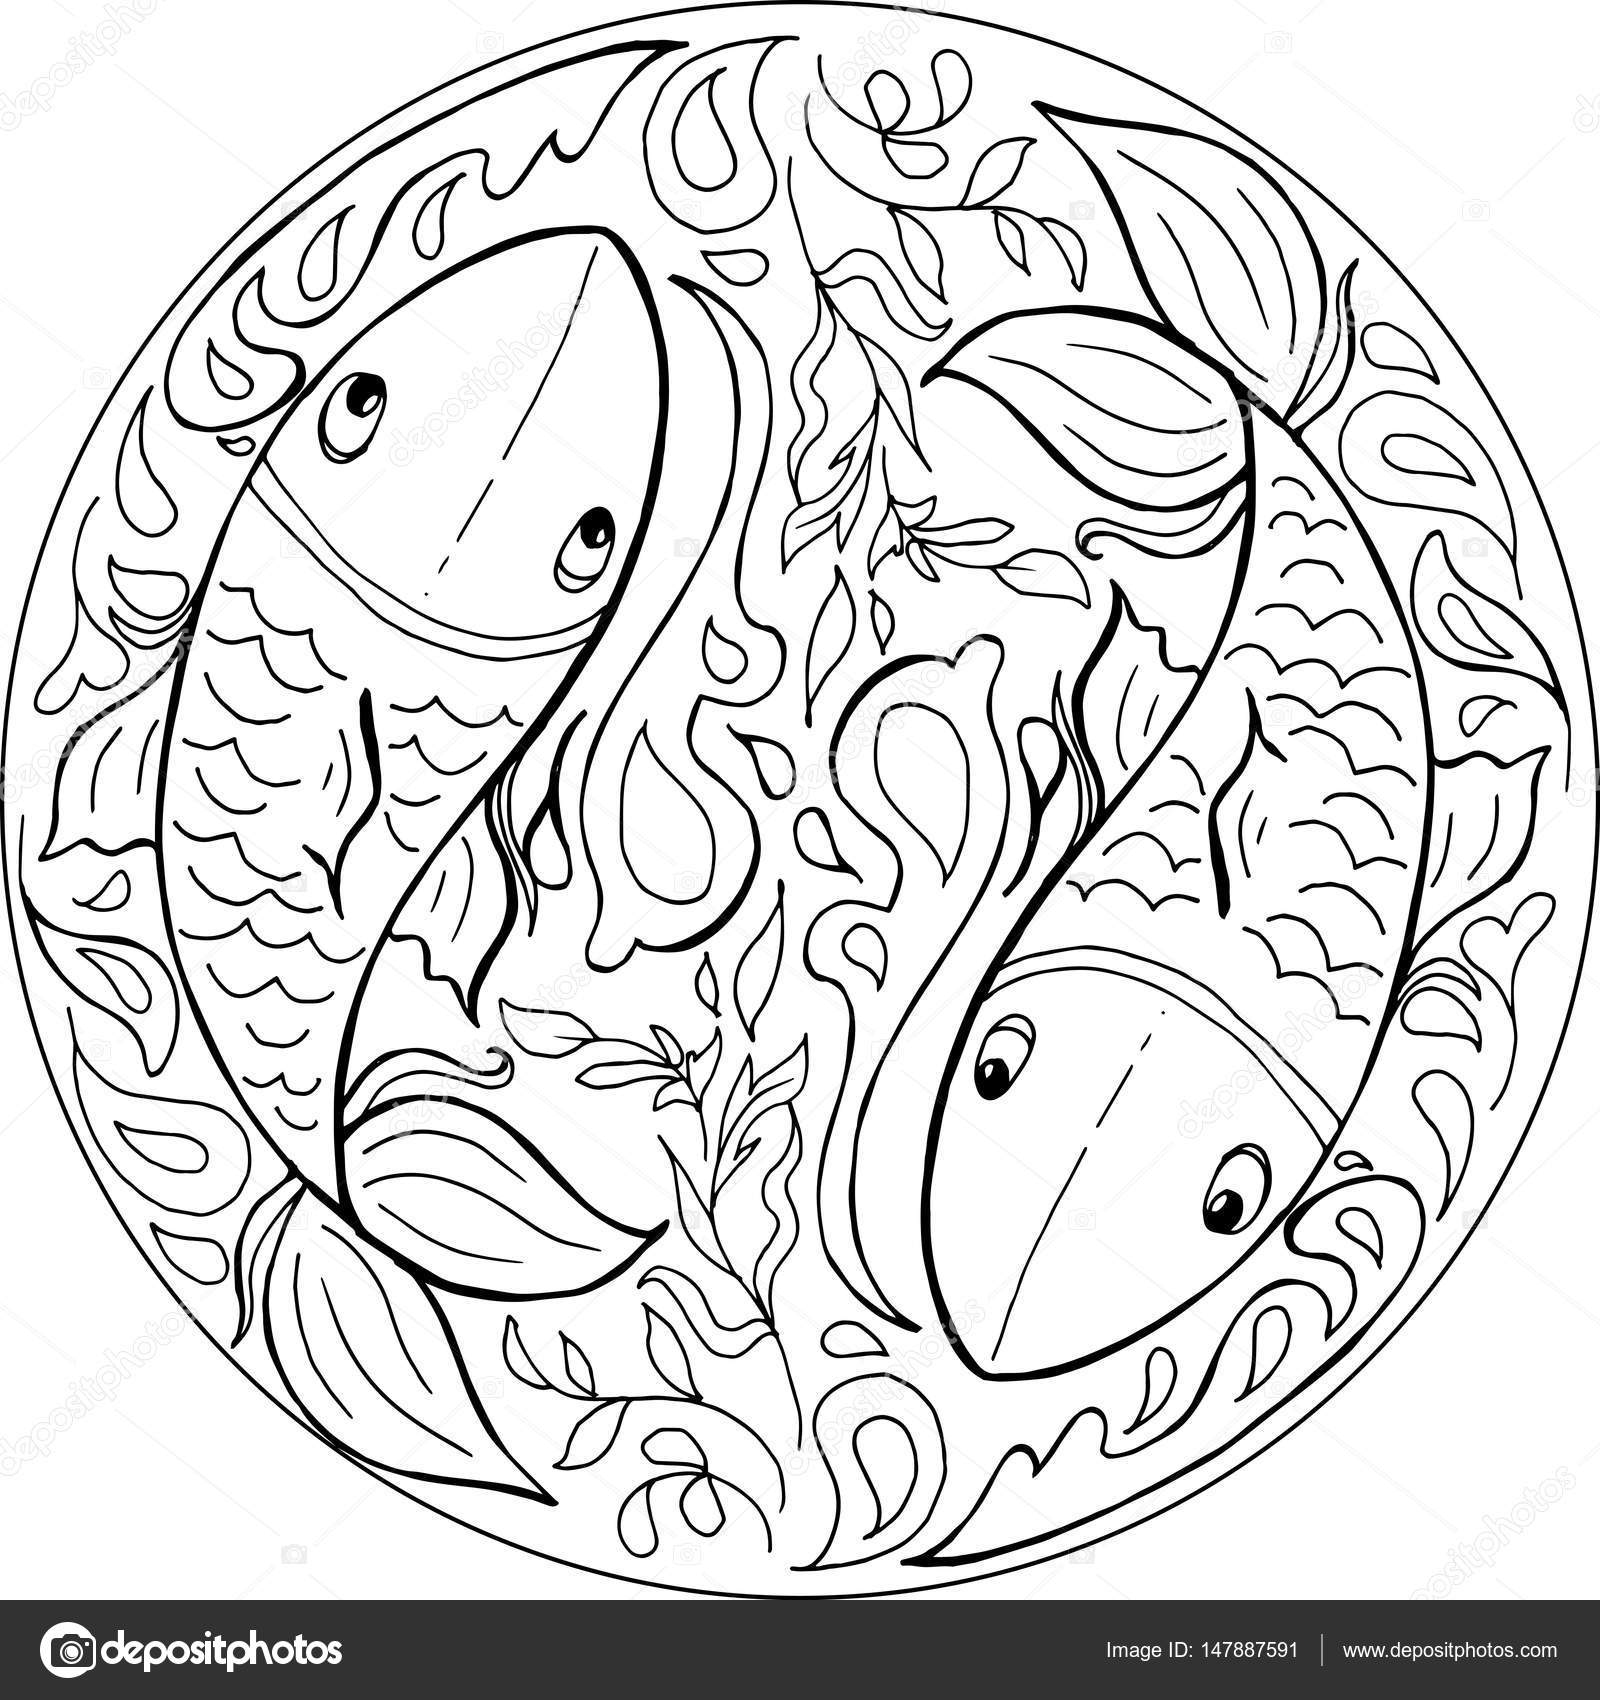 Vector de mandala de peces para colorear — Vector de stock ...